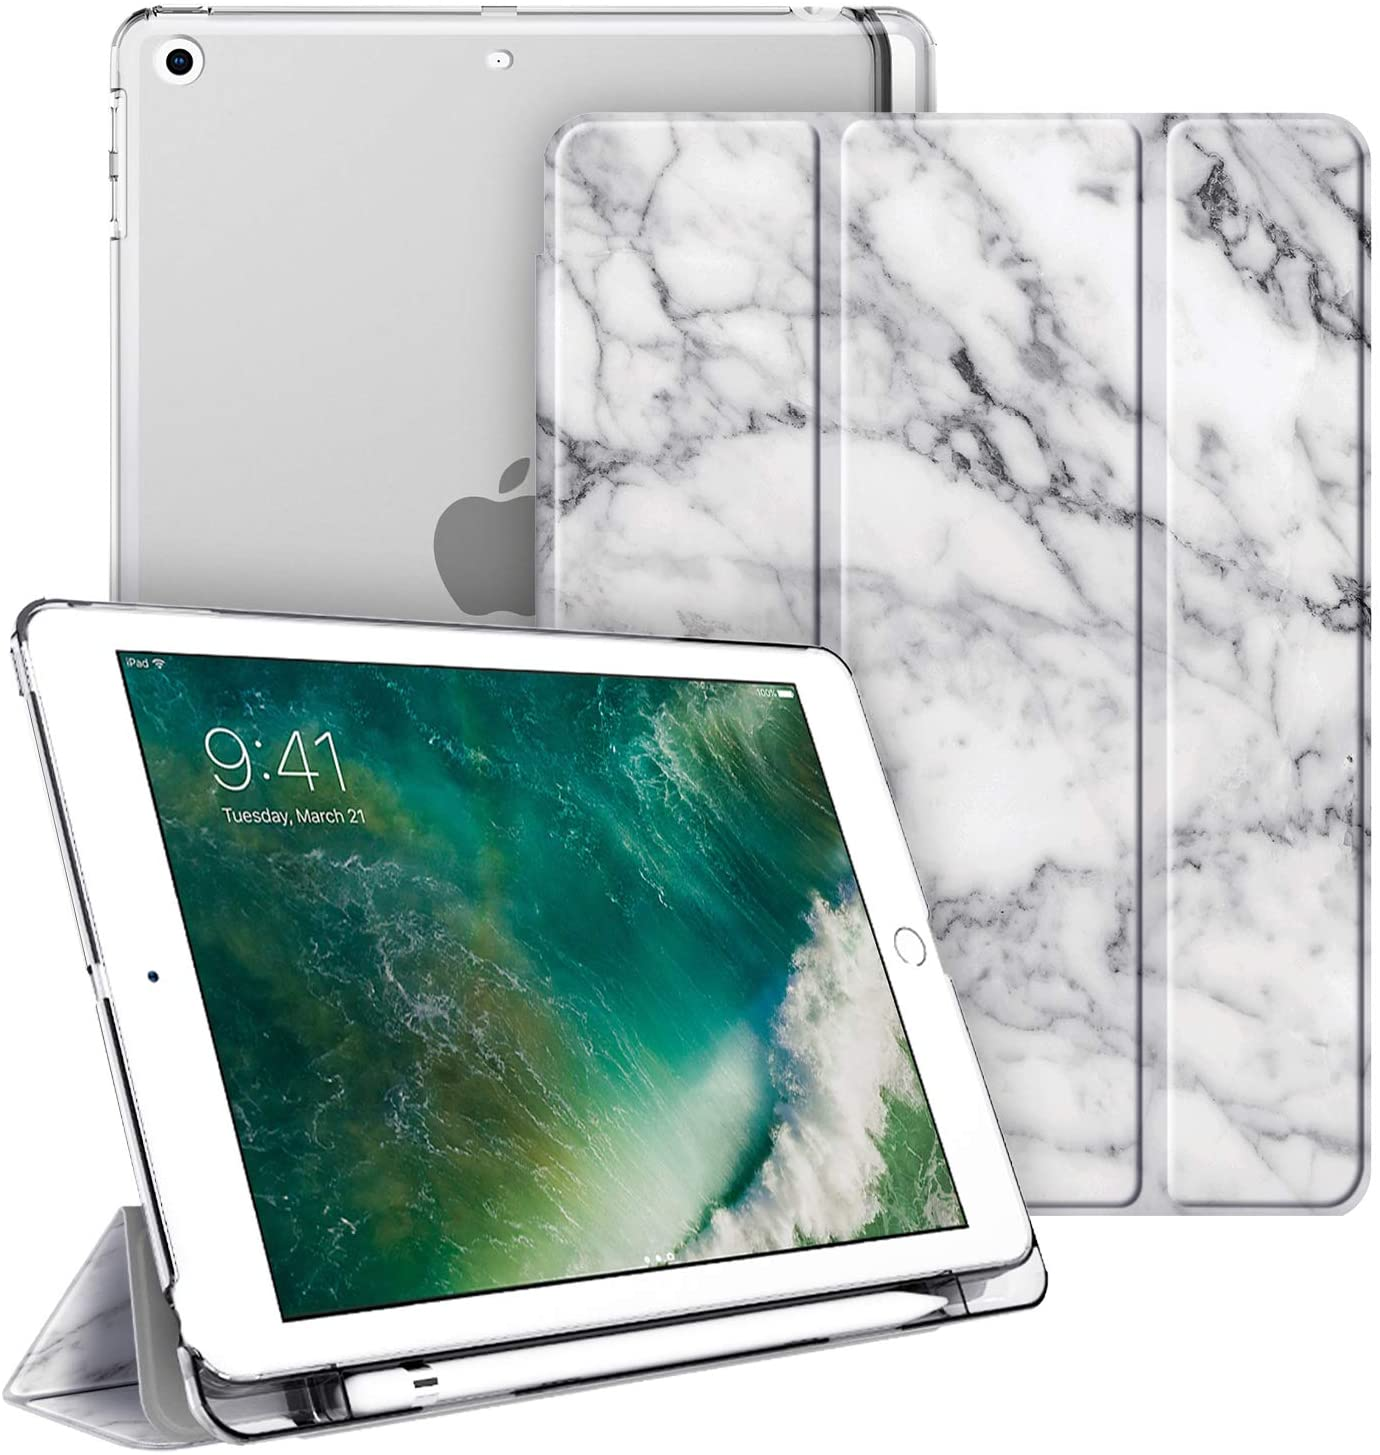 Fintie Case with Built-in Pencil Holder for iPad 9.7 Inch 2018 - Lightweight SlimShell Cover with Translucent Frosted Back, Supports Auto Wake/Sleep for iPad 6th Generation, Marble White